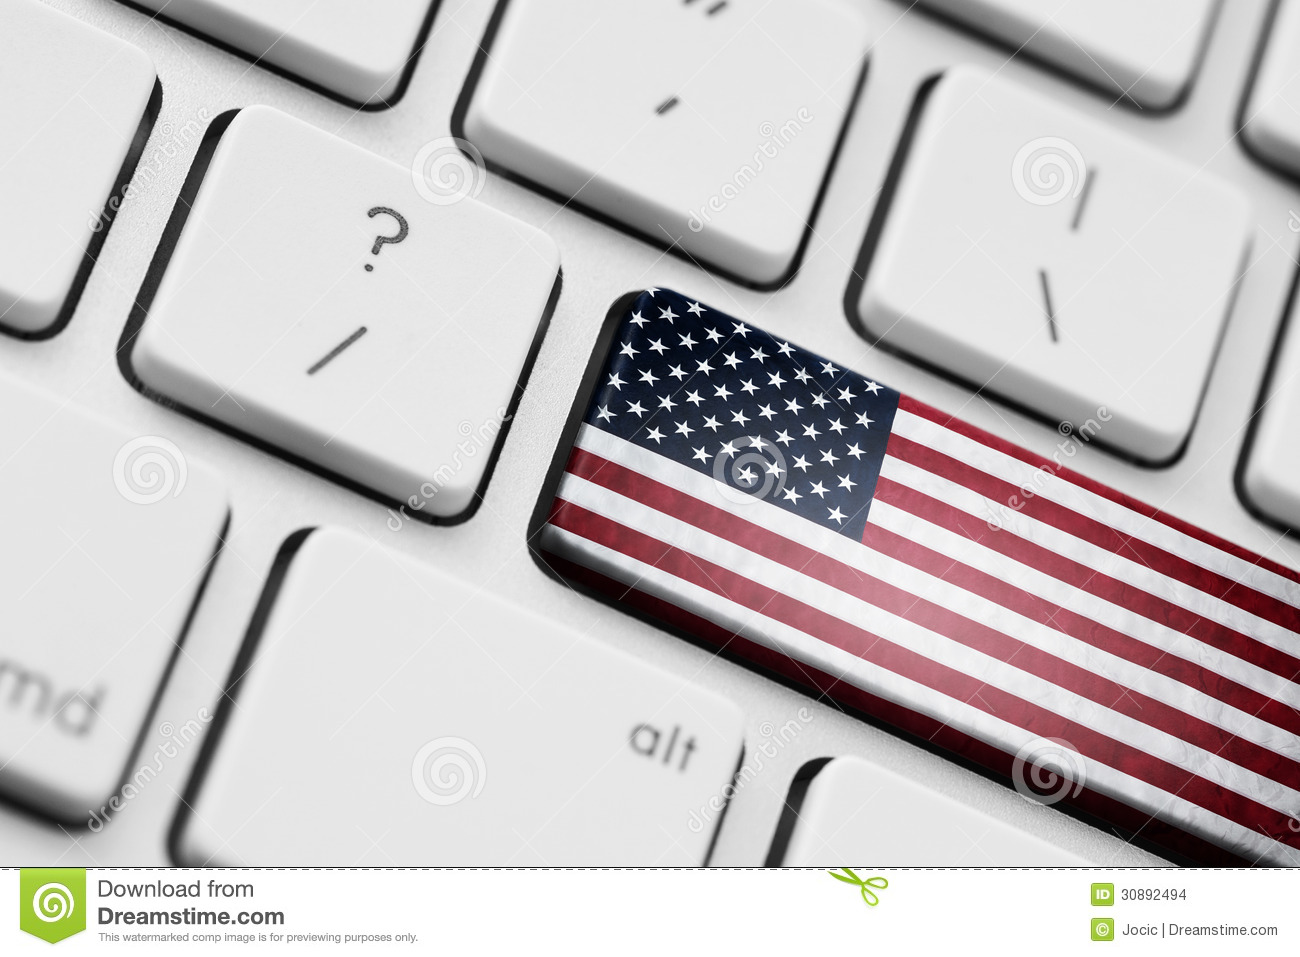 American Flag Computer Key Stock Photos Download 9 Images